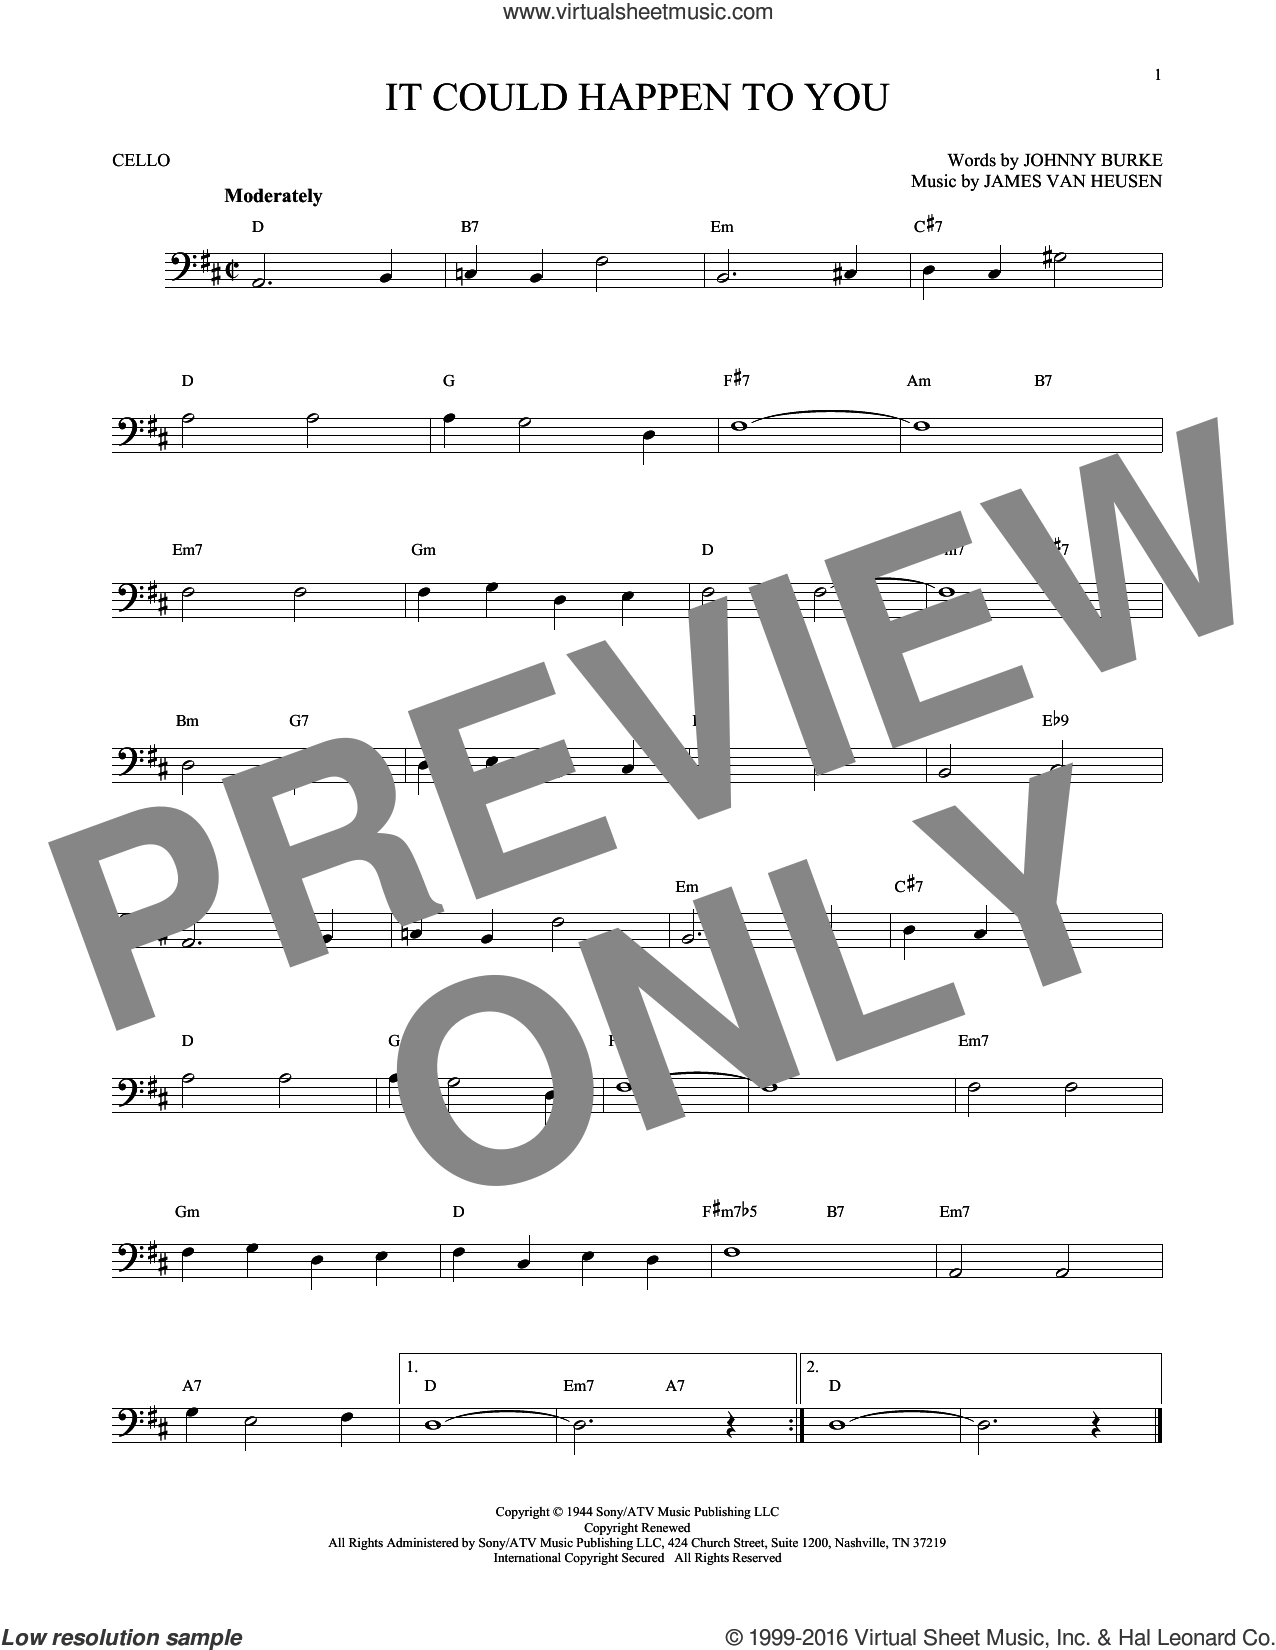 It Could Happen To You sheet music for cello solo by Jimmy van Heusen, June Christy and John Burke, intermediate skill level